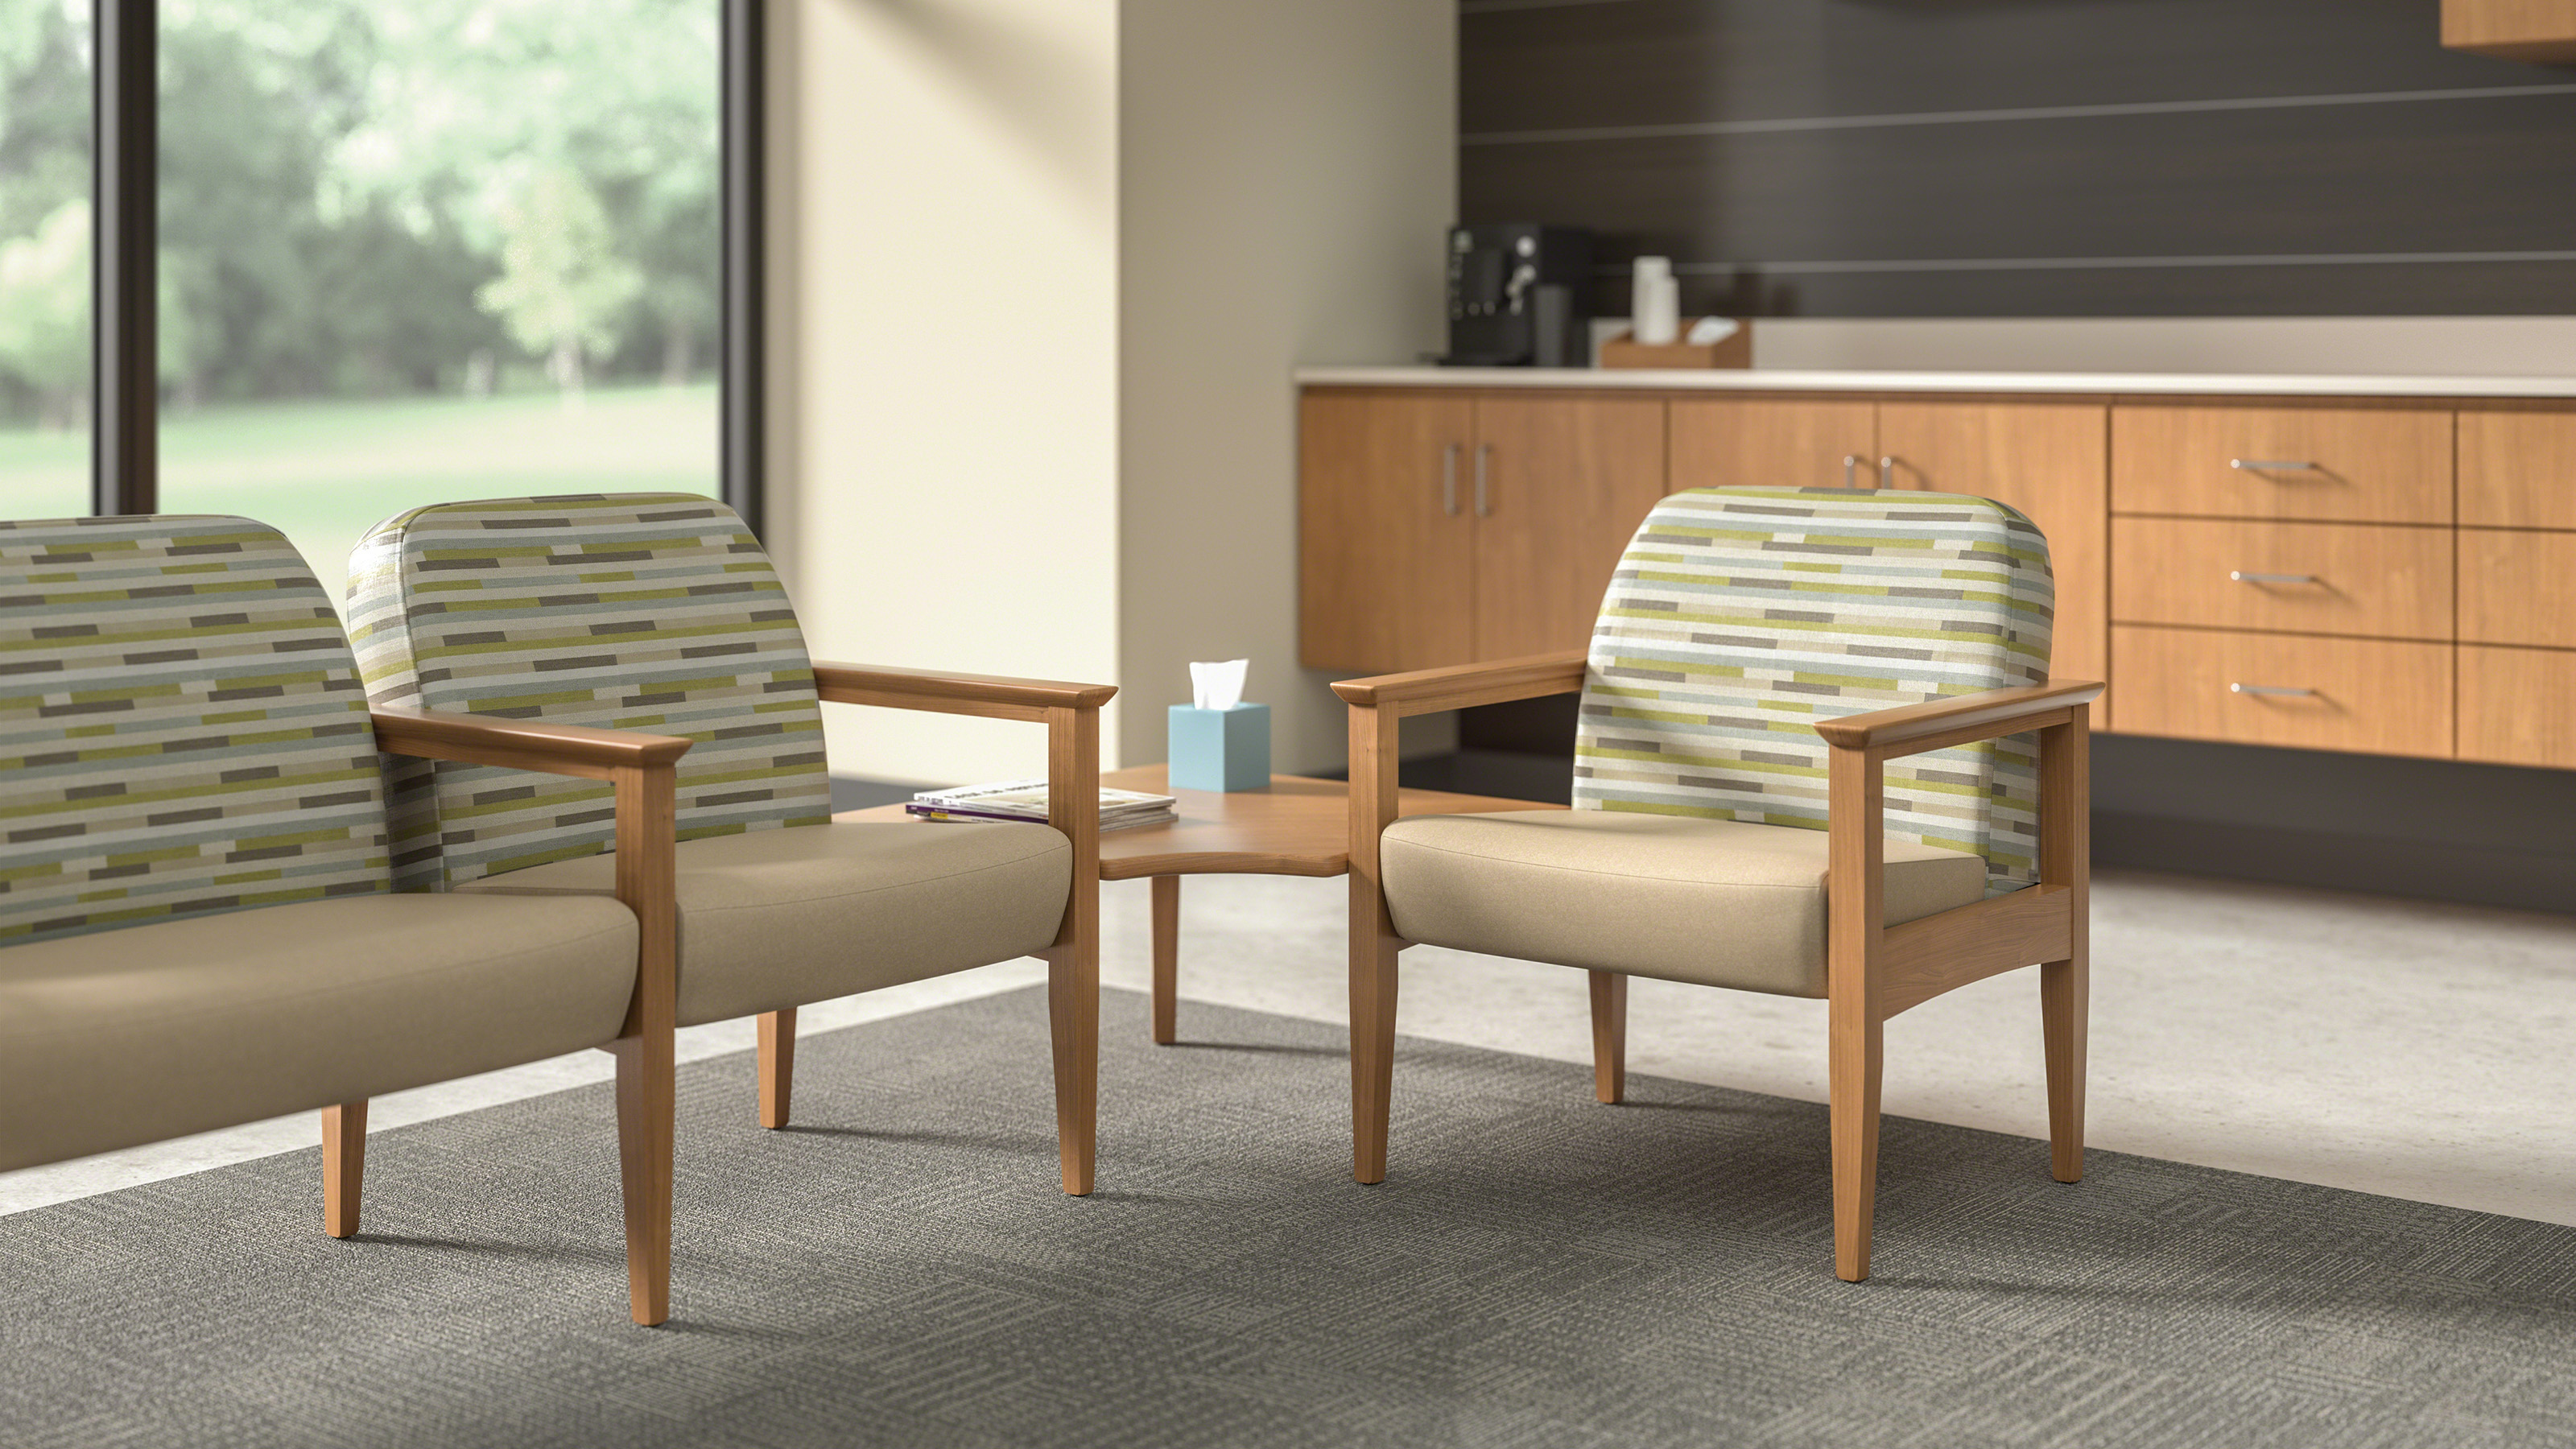 Outlook Lounge & Patient Room Chairs Steelcase